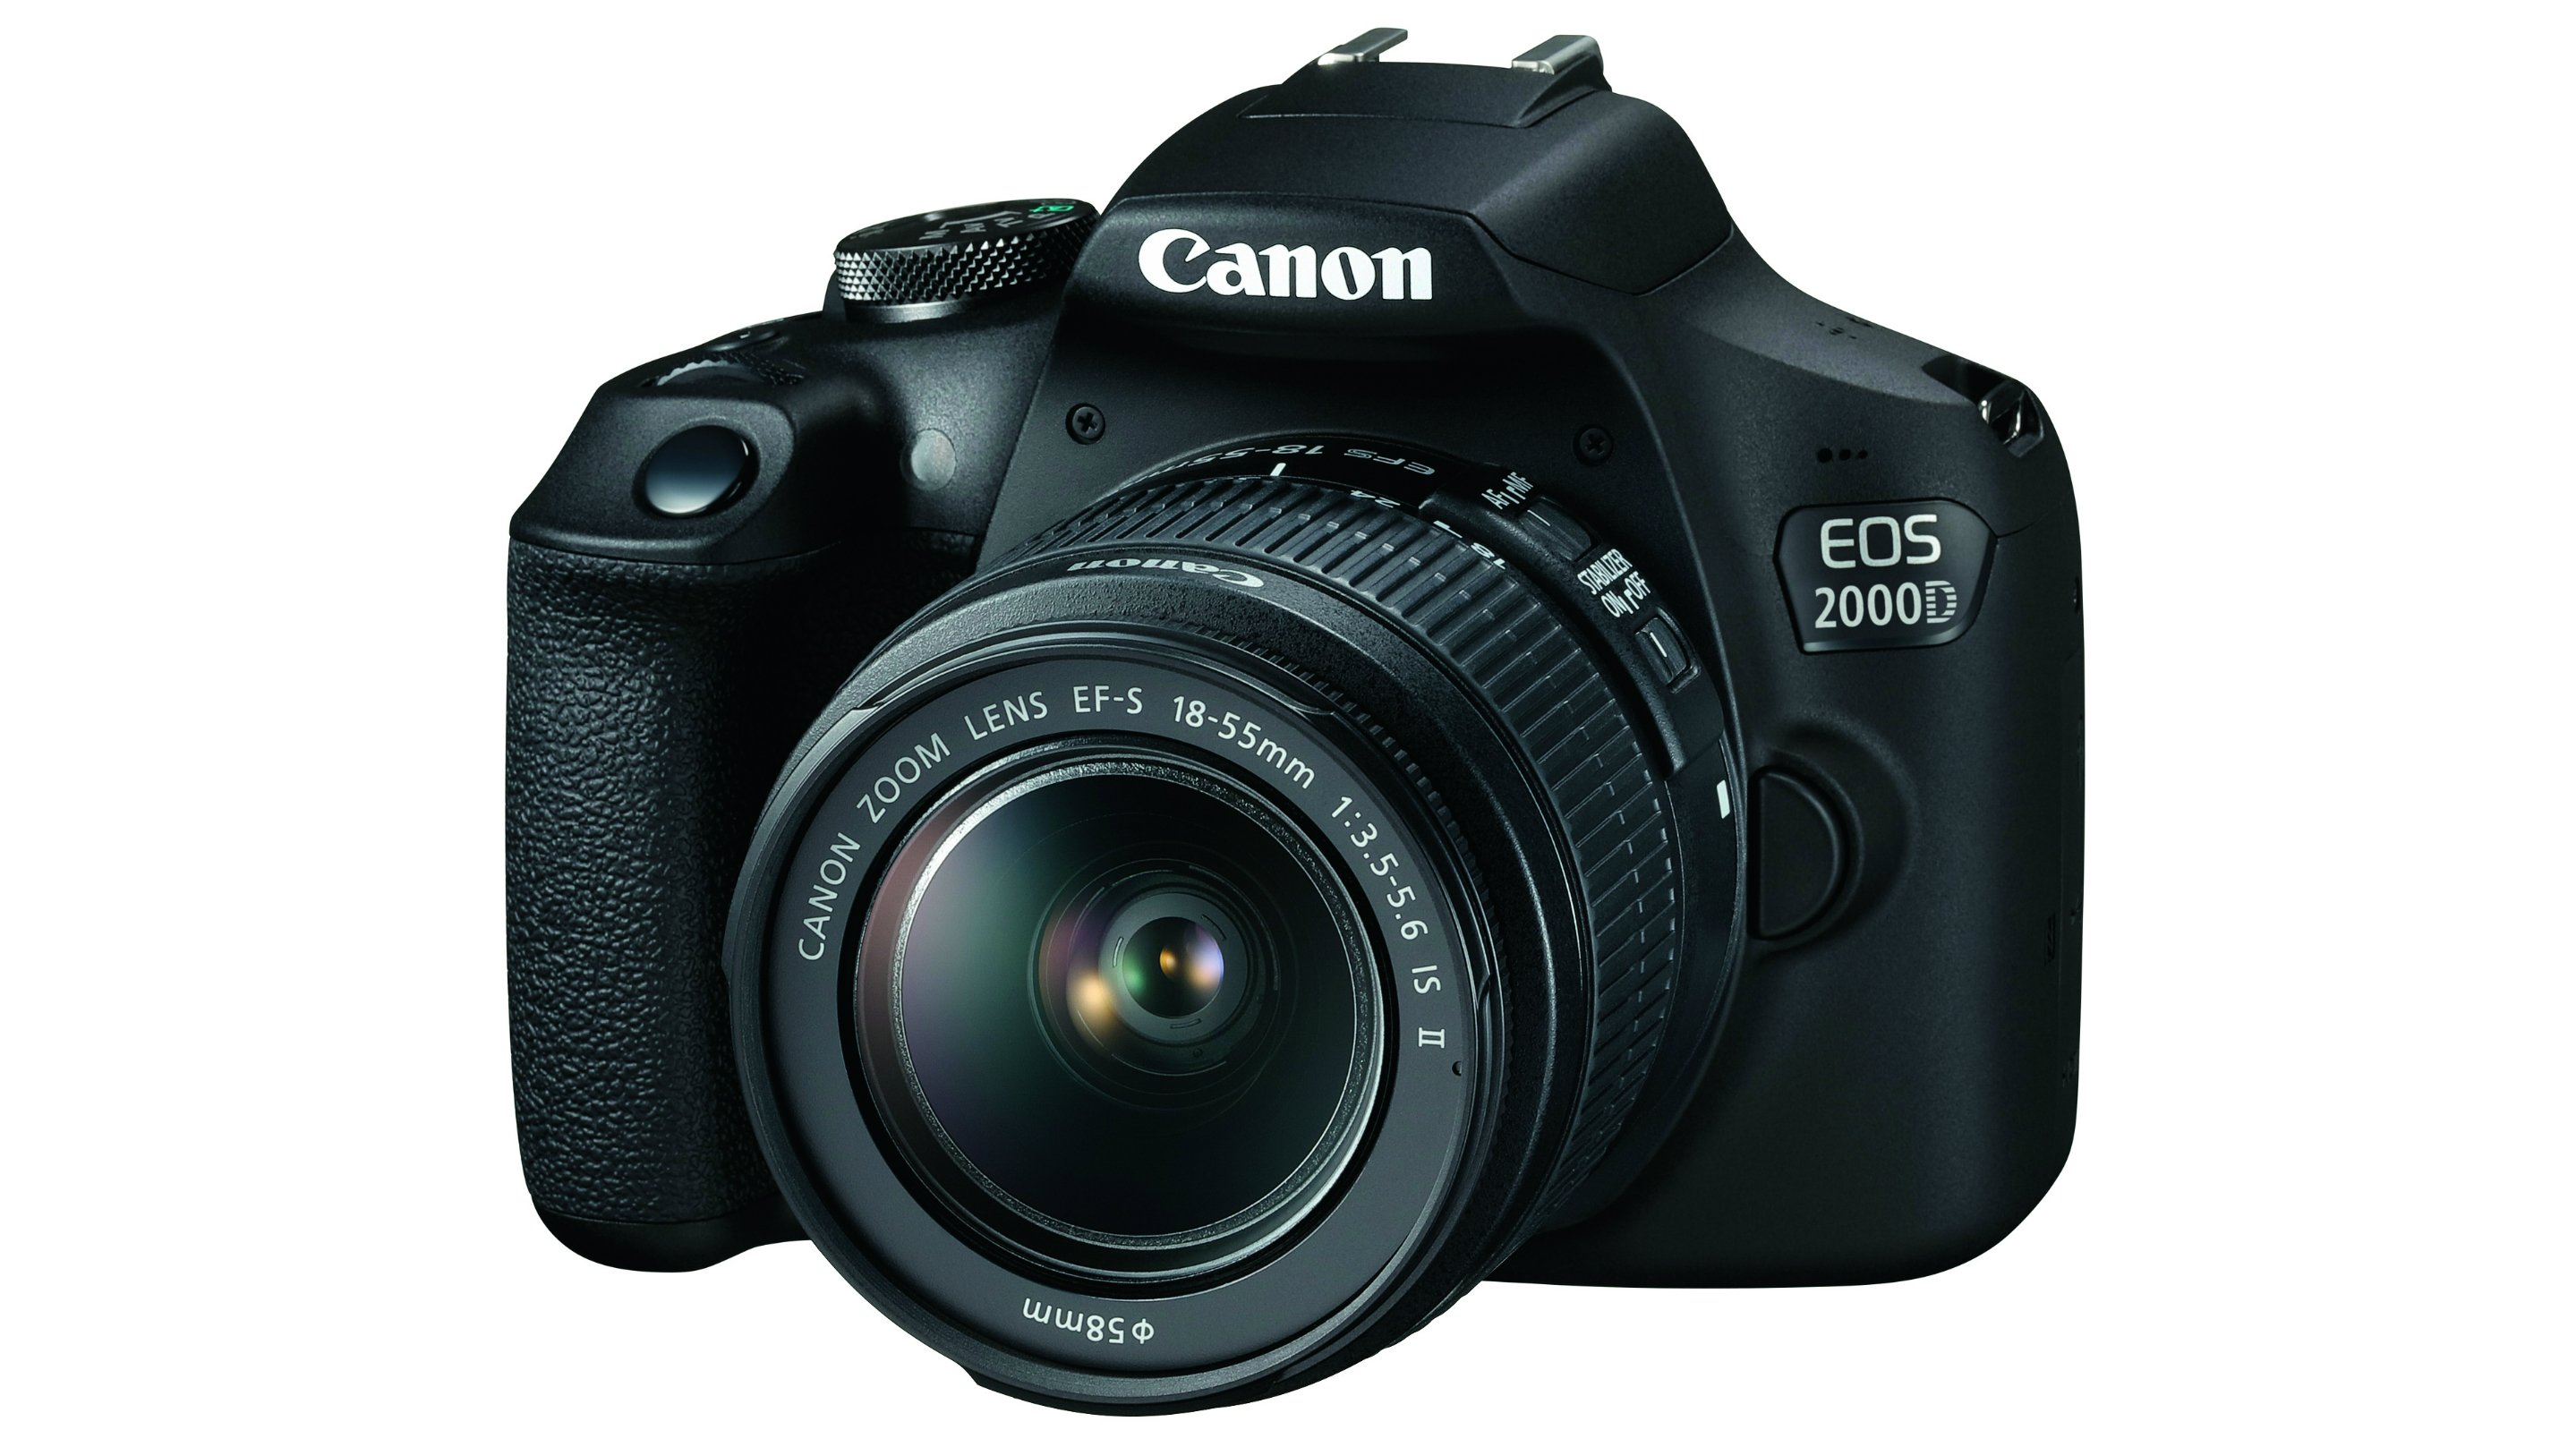 Canon Eos 2000d Review Is This The Sub 500 Dslr You Re Looking For Expert Reviews